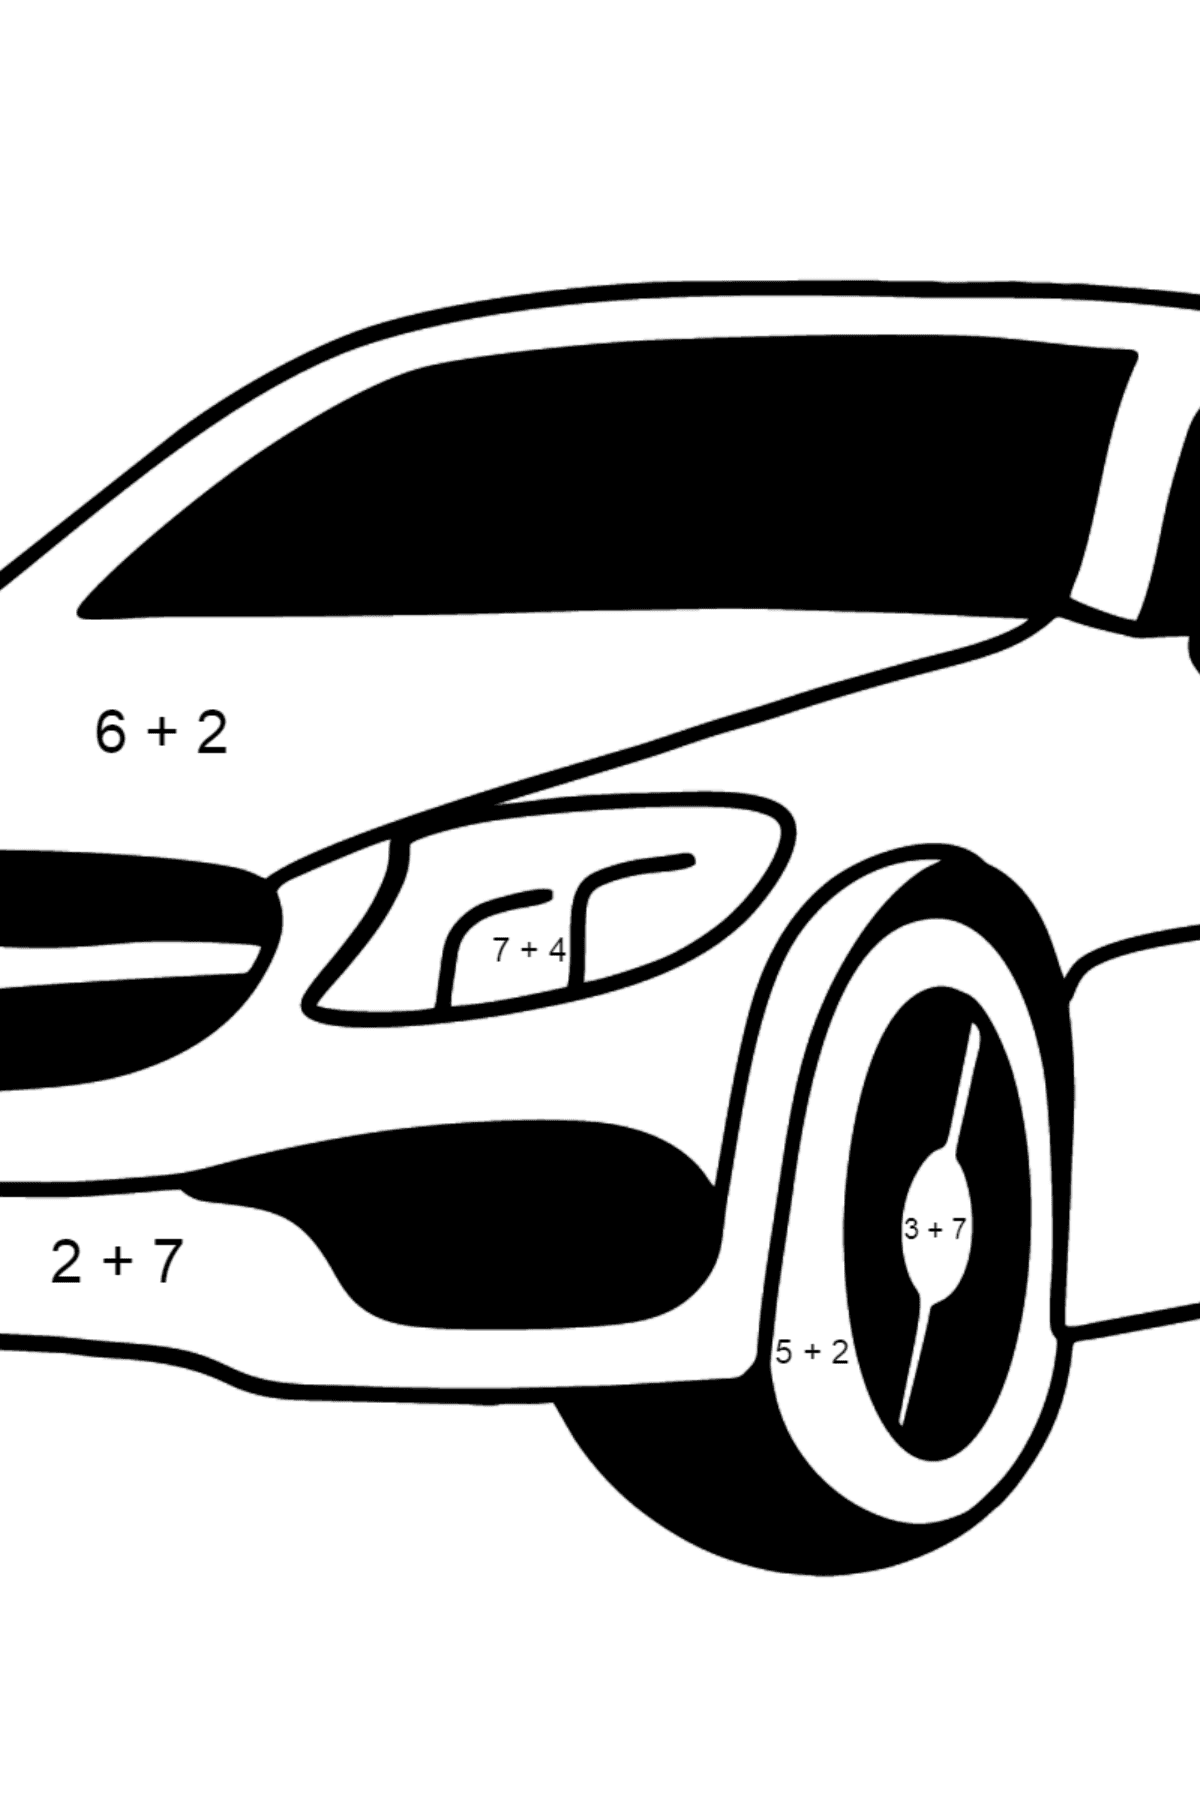 Mercedes C63 AMG car coloring page - Math Coloring - Addition for Kids